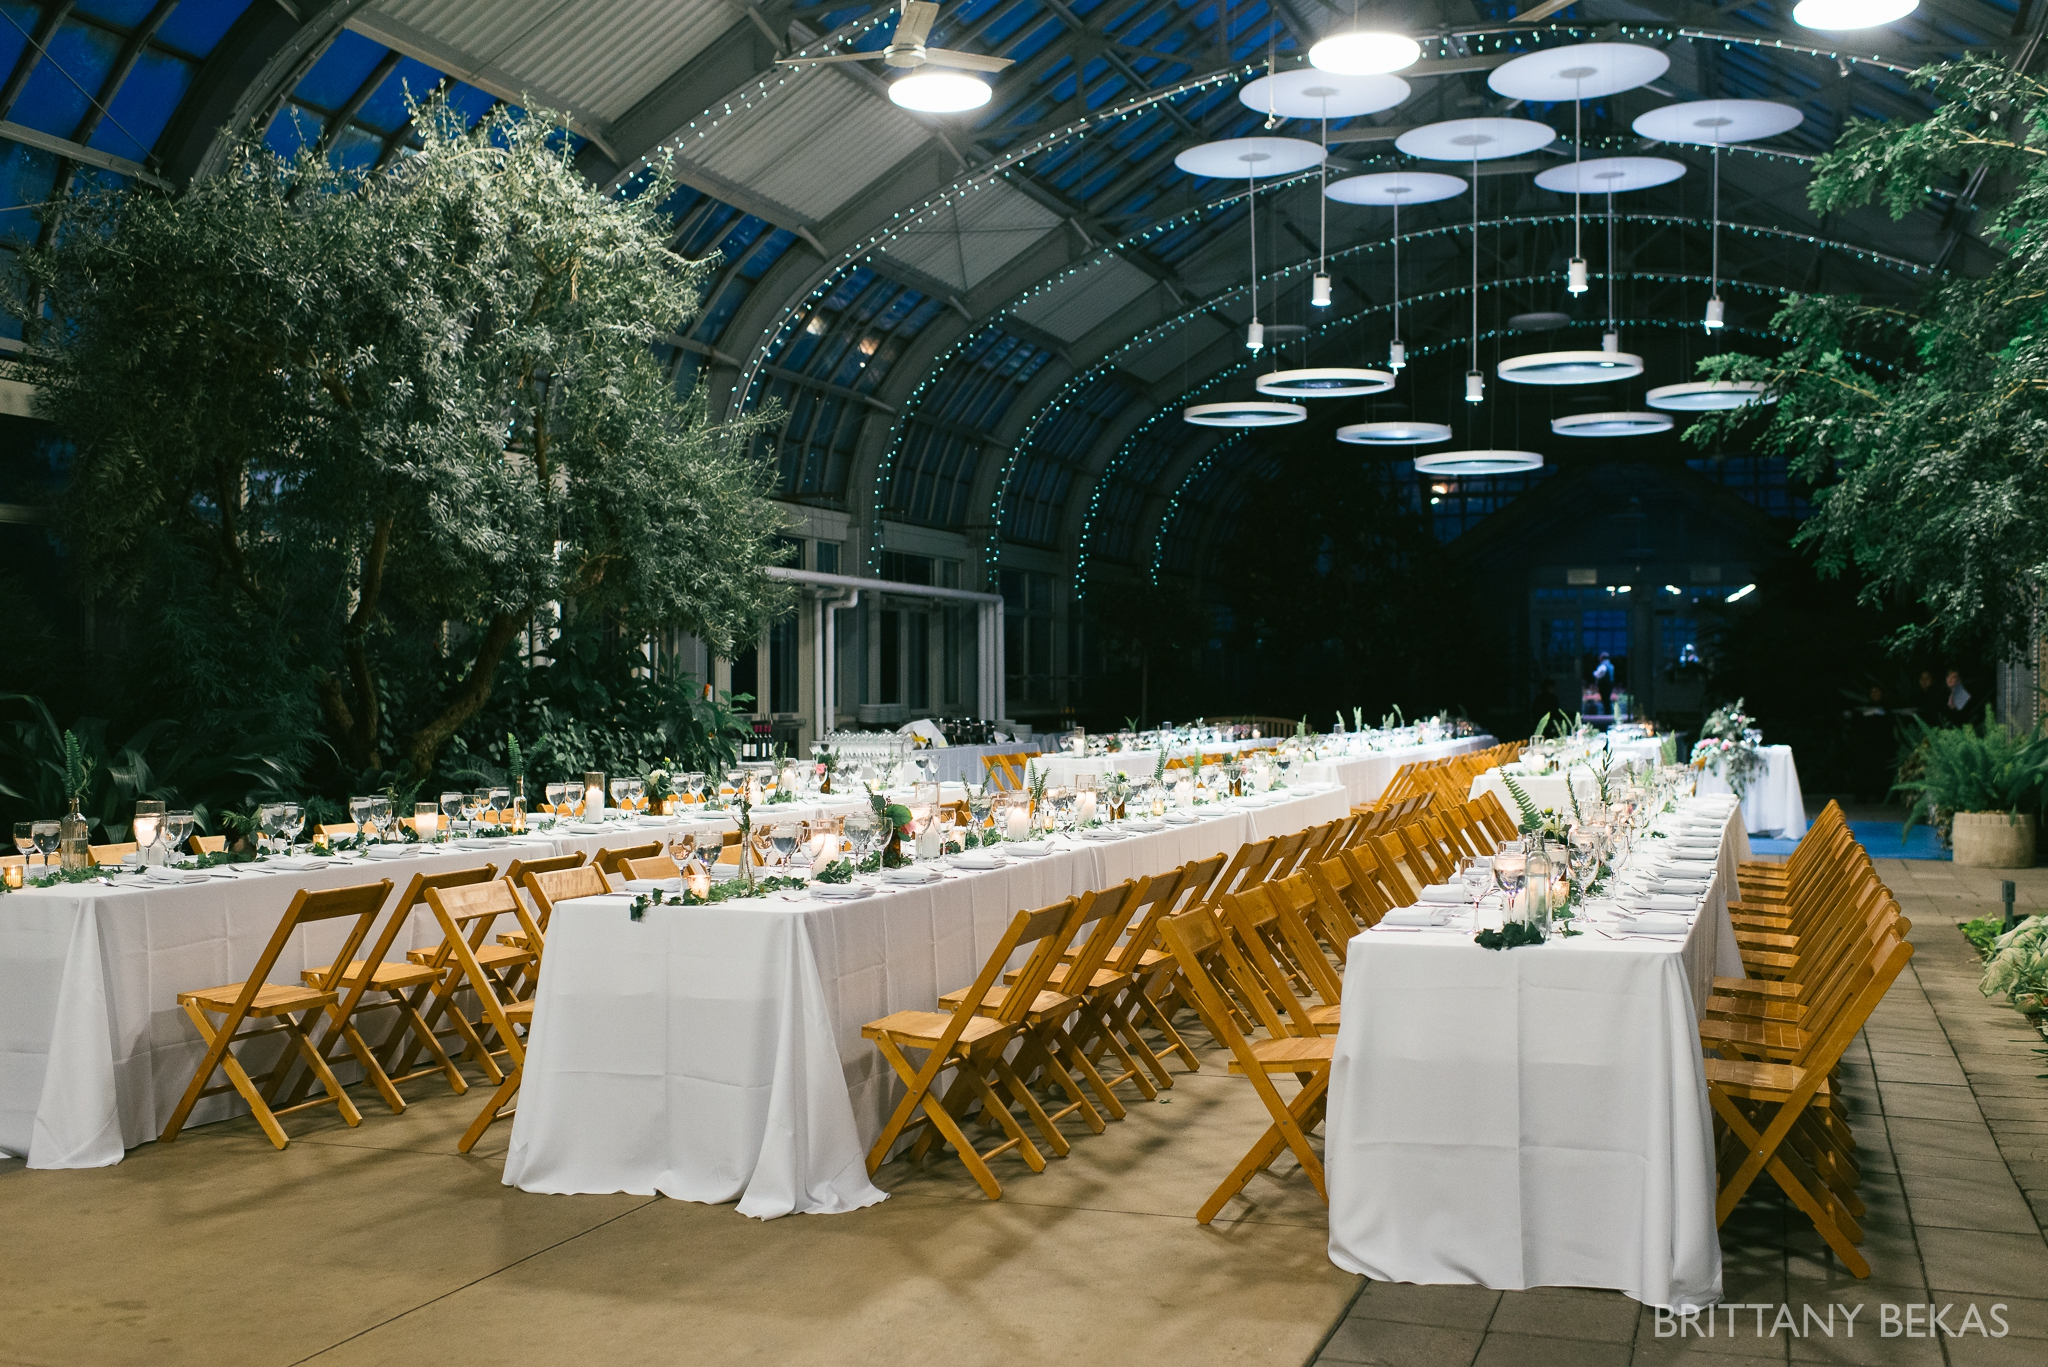 Chicago Wedding Garfield Park Conservatory Wedding Photos - Brittany Bekas Photography_0053